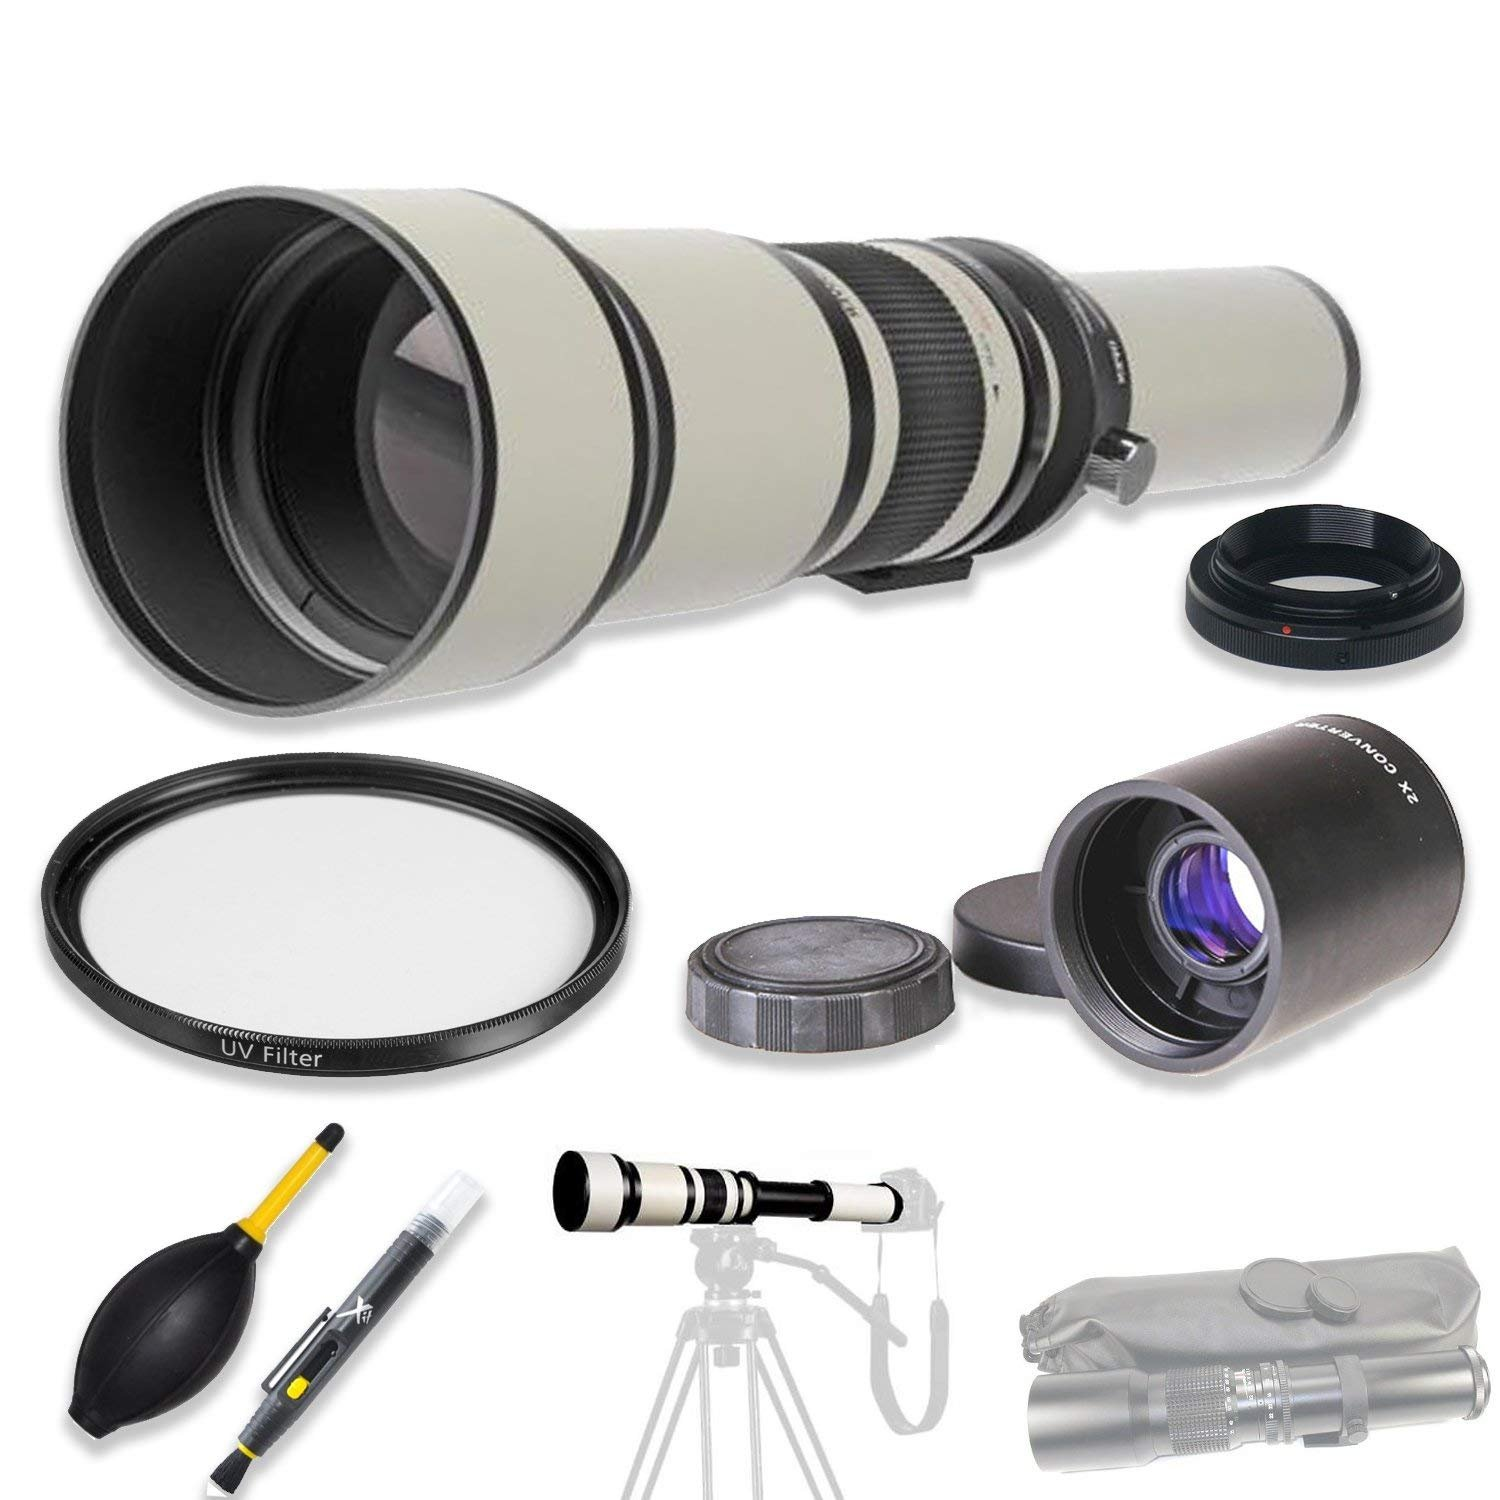 High Definition Accessories multi-coated 650 – 1300 mm B07DX6RWH7 f for/ 8.0 – 16.0プリセット望遠レンズ+ 2 x Teleconverter & Accessories for Nikon DSLRs Including d3100、d3200、d3300、d3400、d5300、d5600、d7200、d7500、d750 & More B07DX6RWH7, SELECTSHOP ARCHISS:24a5f1f1 --- ijpba.info